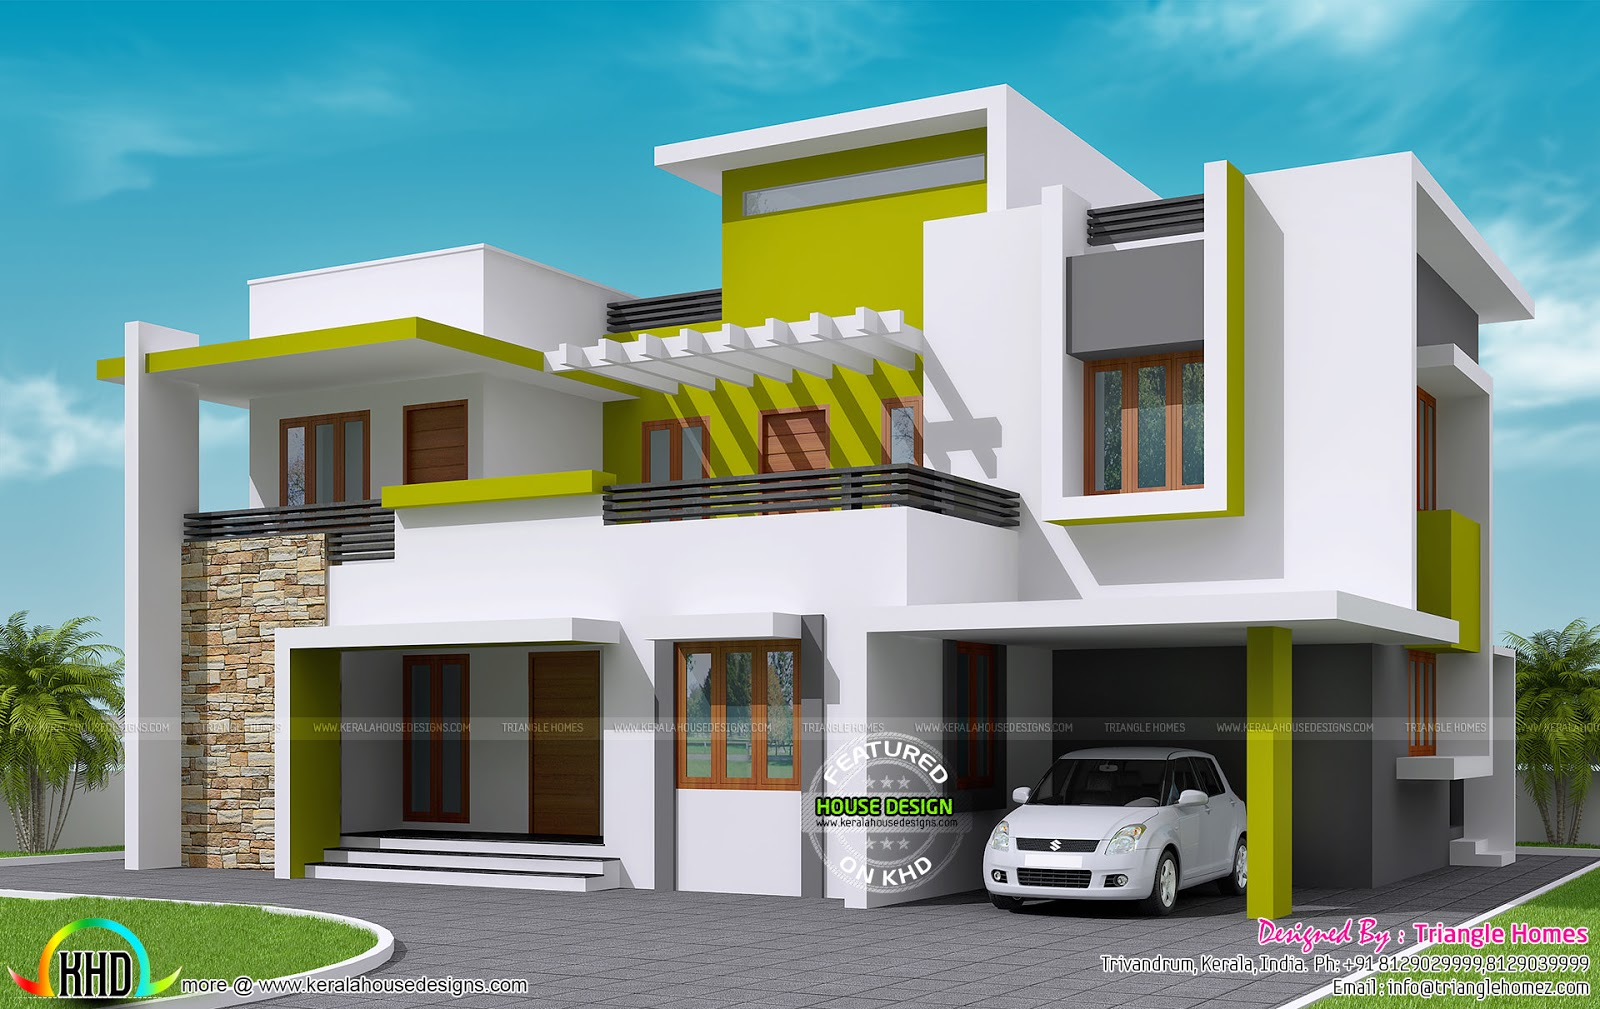 232 sq m contemporary house kerala home design and floor New model contemporary house